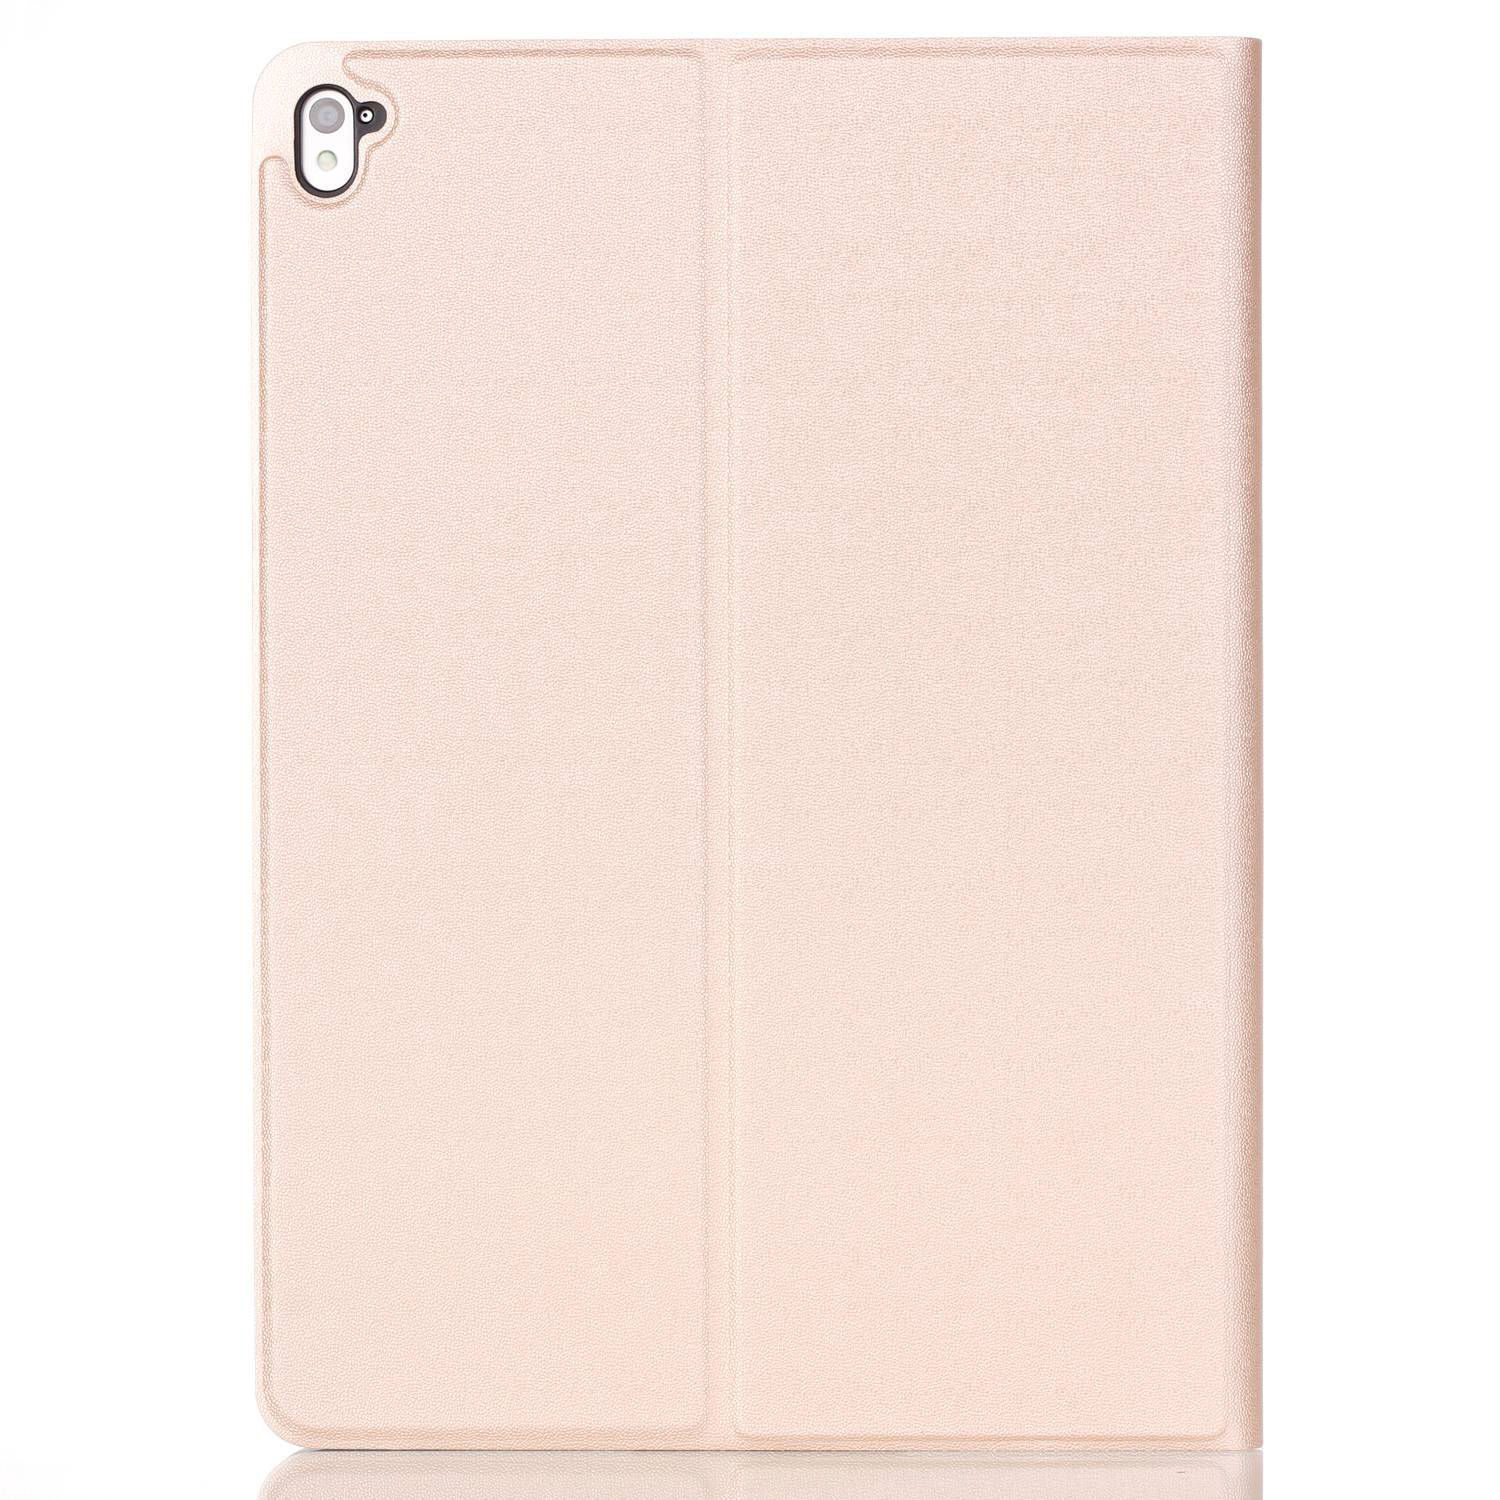 Custodia-Per-Apple-IPAD-Pro-IN-9-7-Pollici-Case-Cover-Protettiva-Skin-Shell miniatura 43